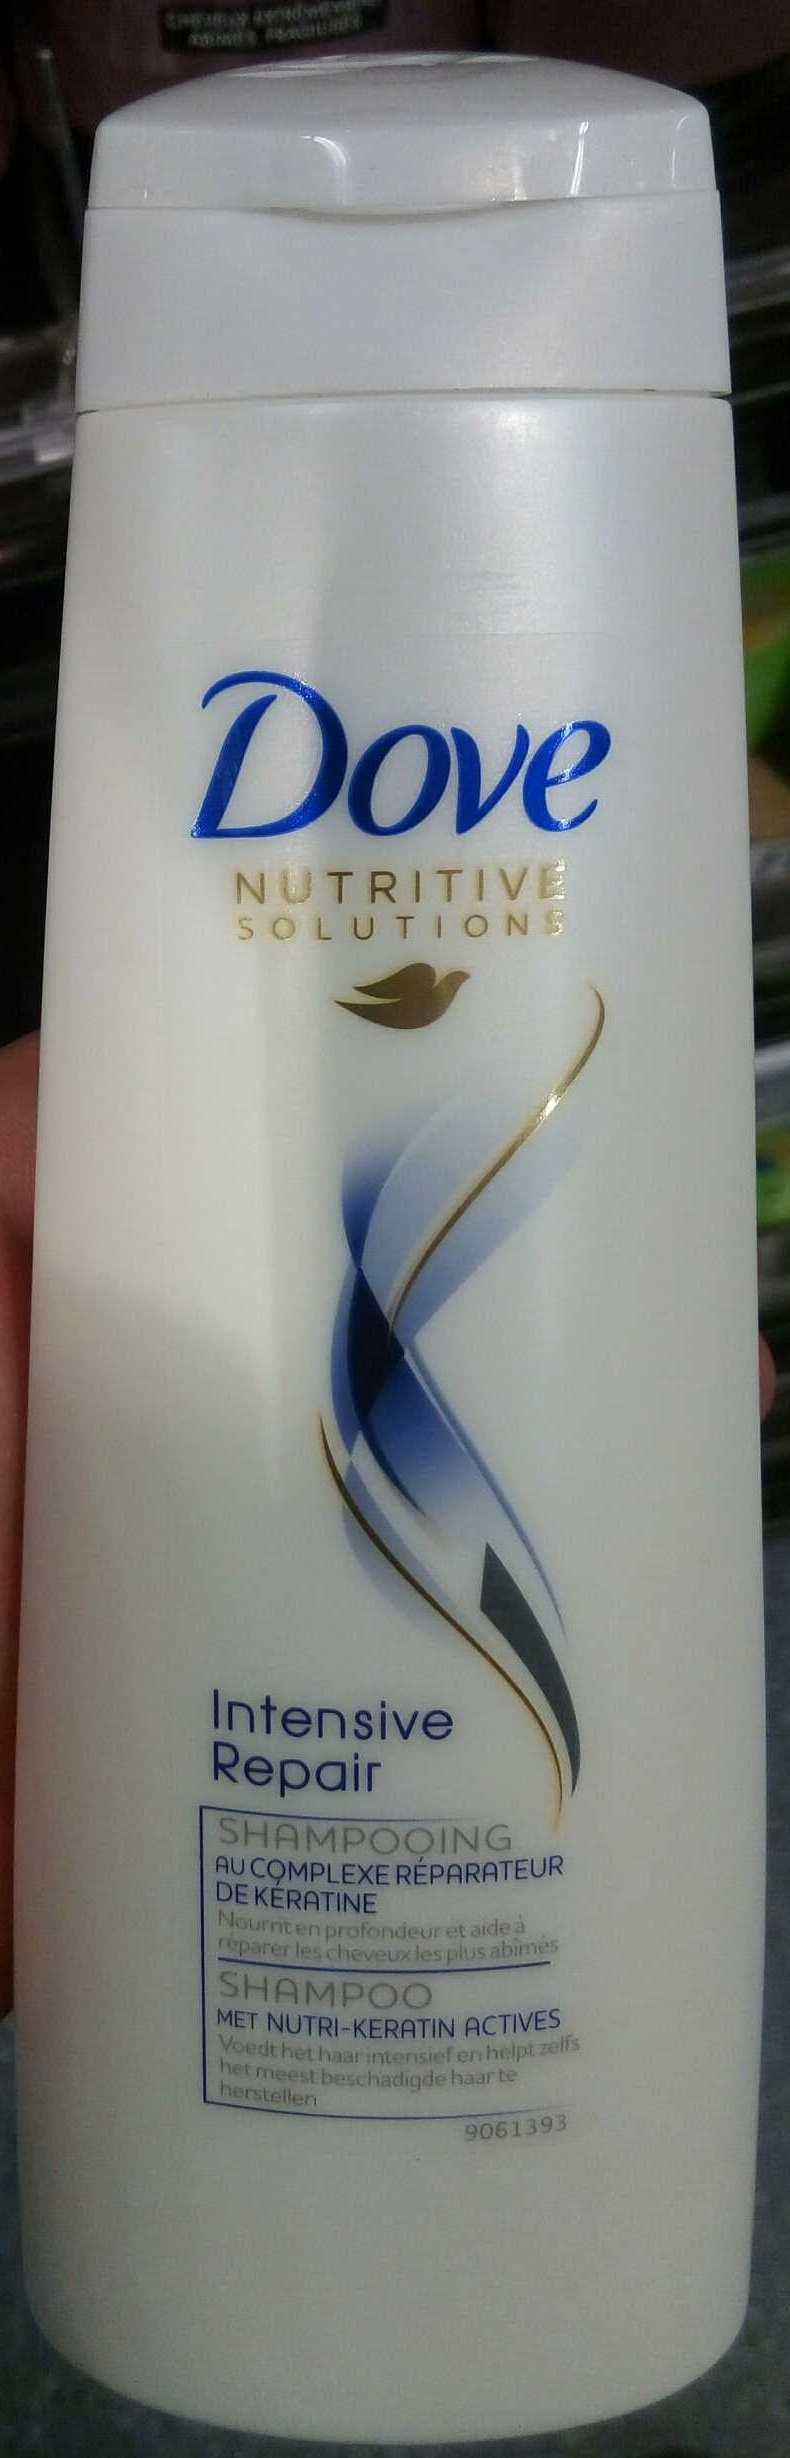 Nutrition Solution Intensive Repair - Product